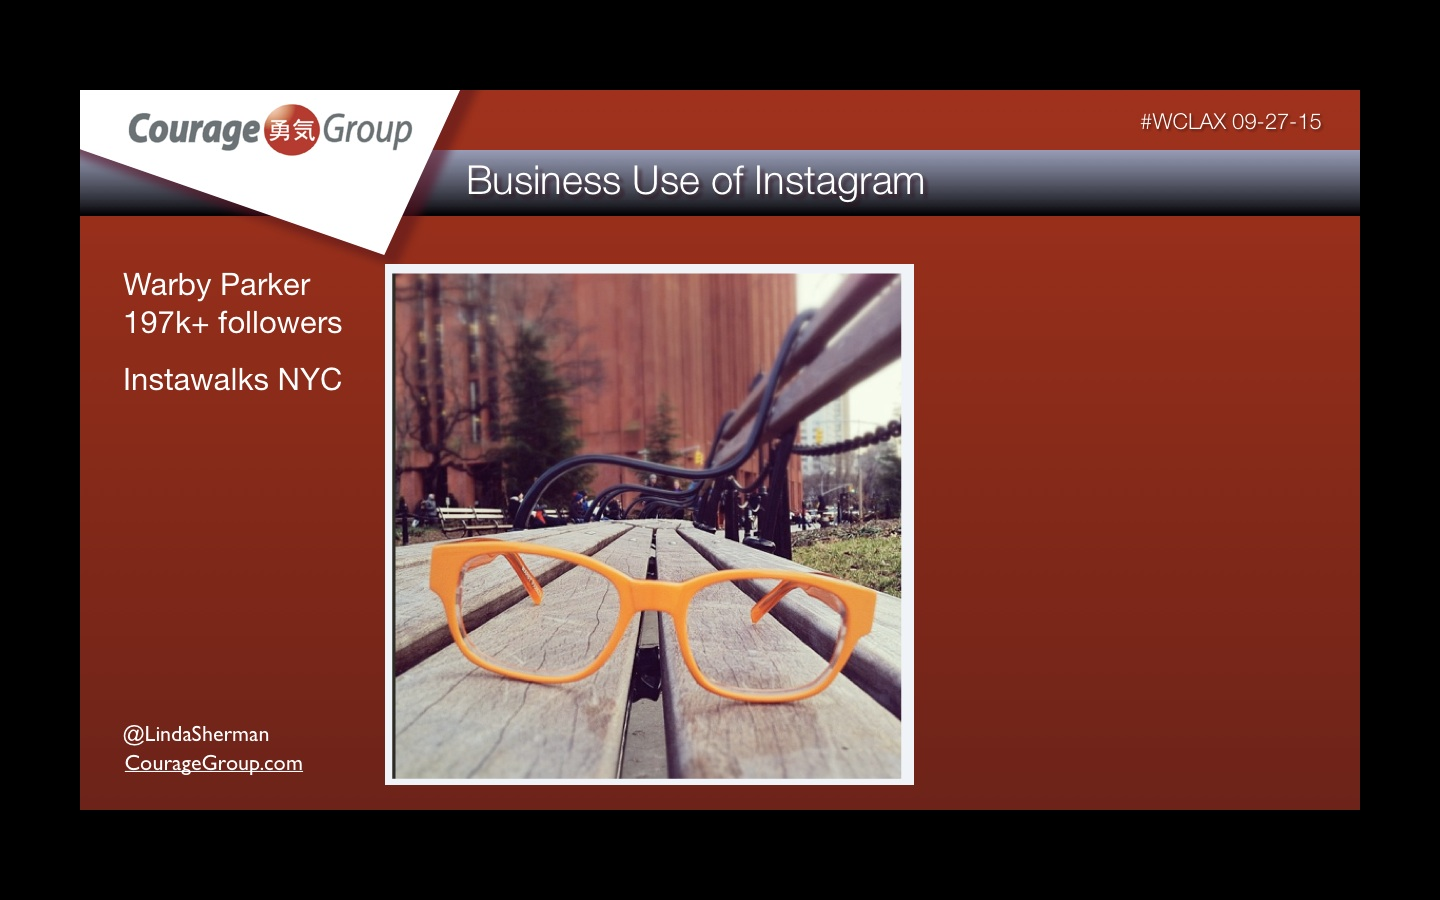 Business use of Instagram Warby Parker presentation by Linda Sherman